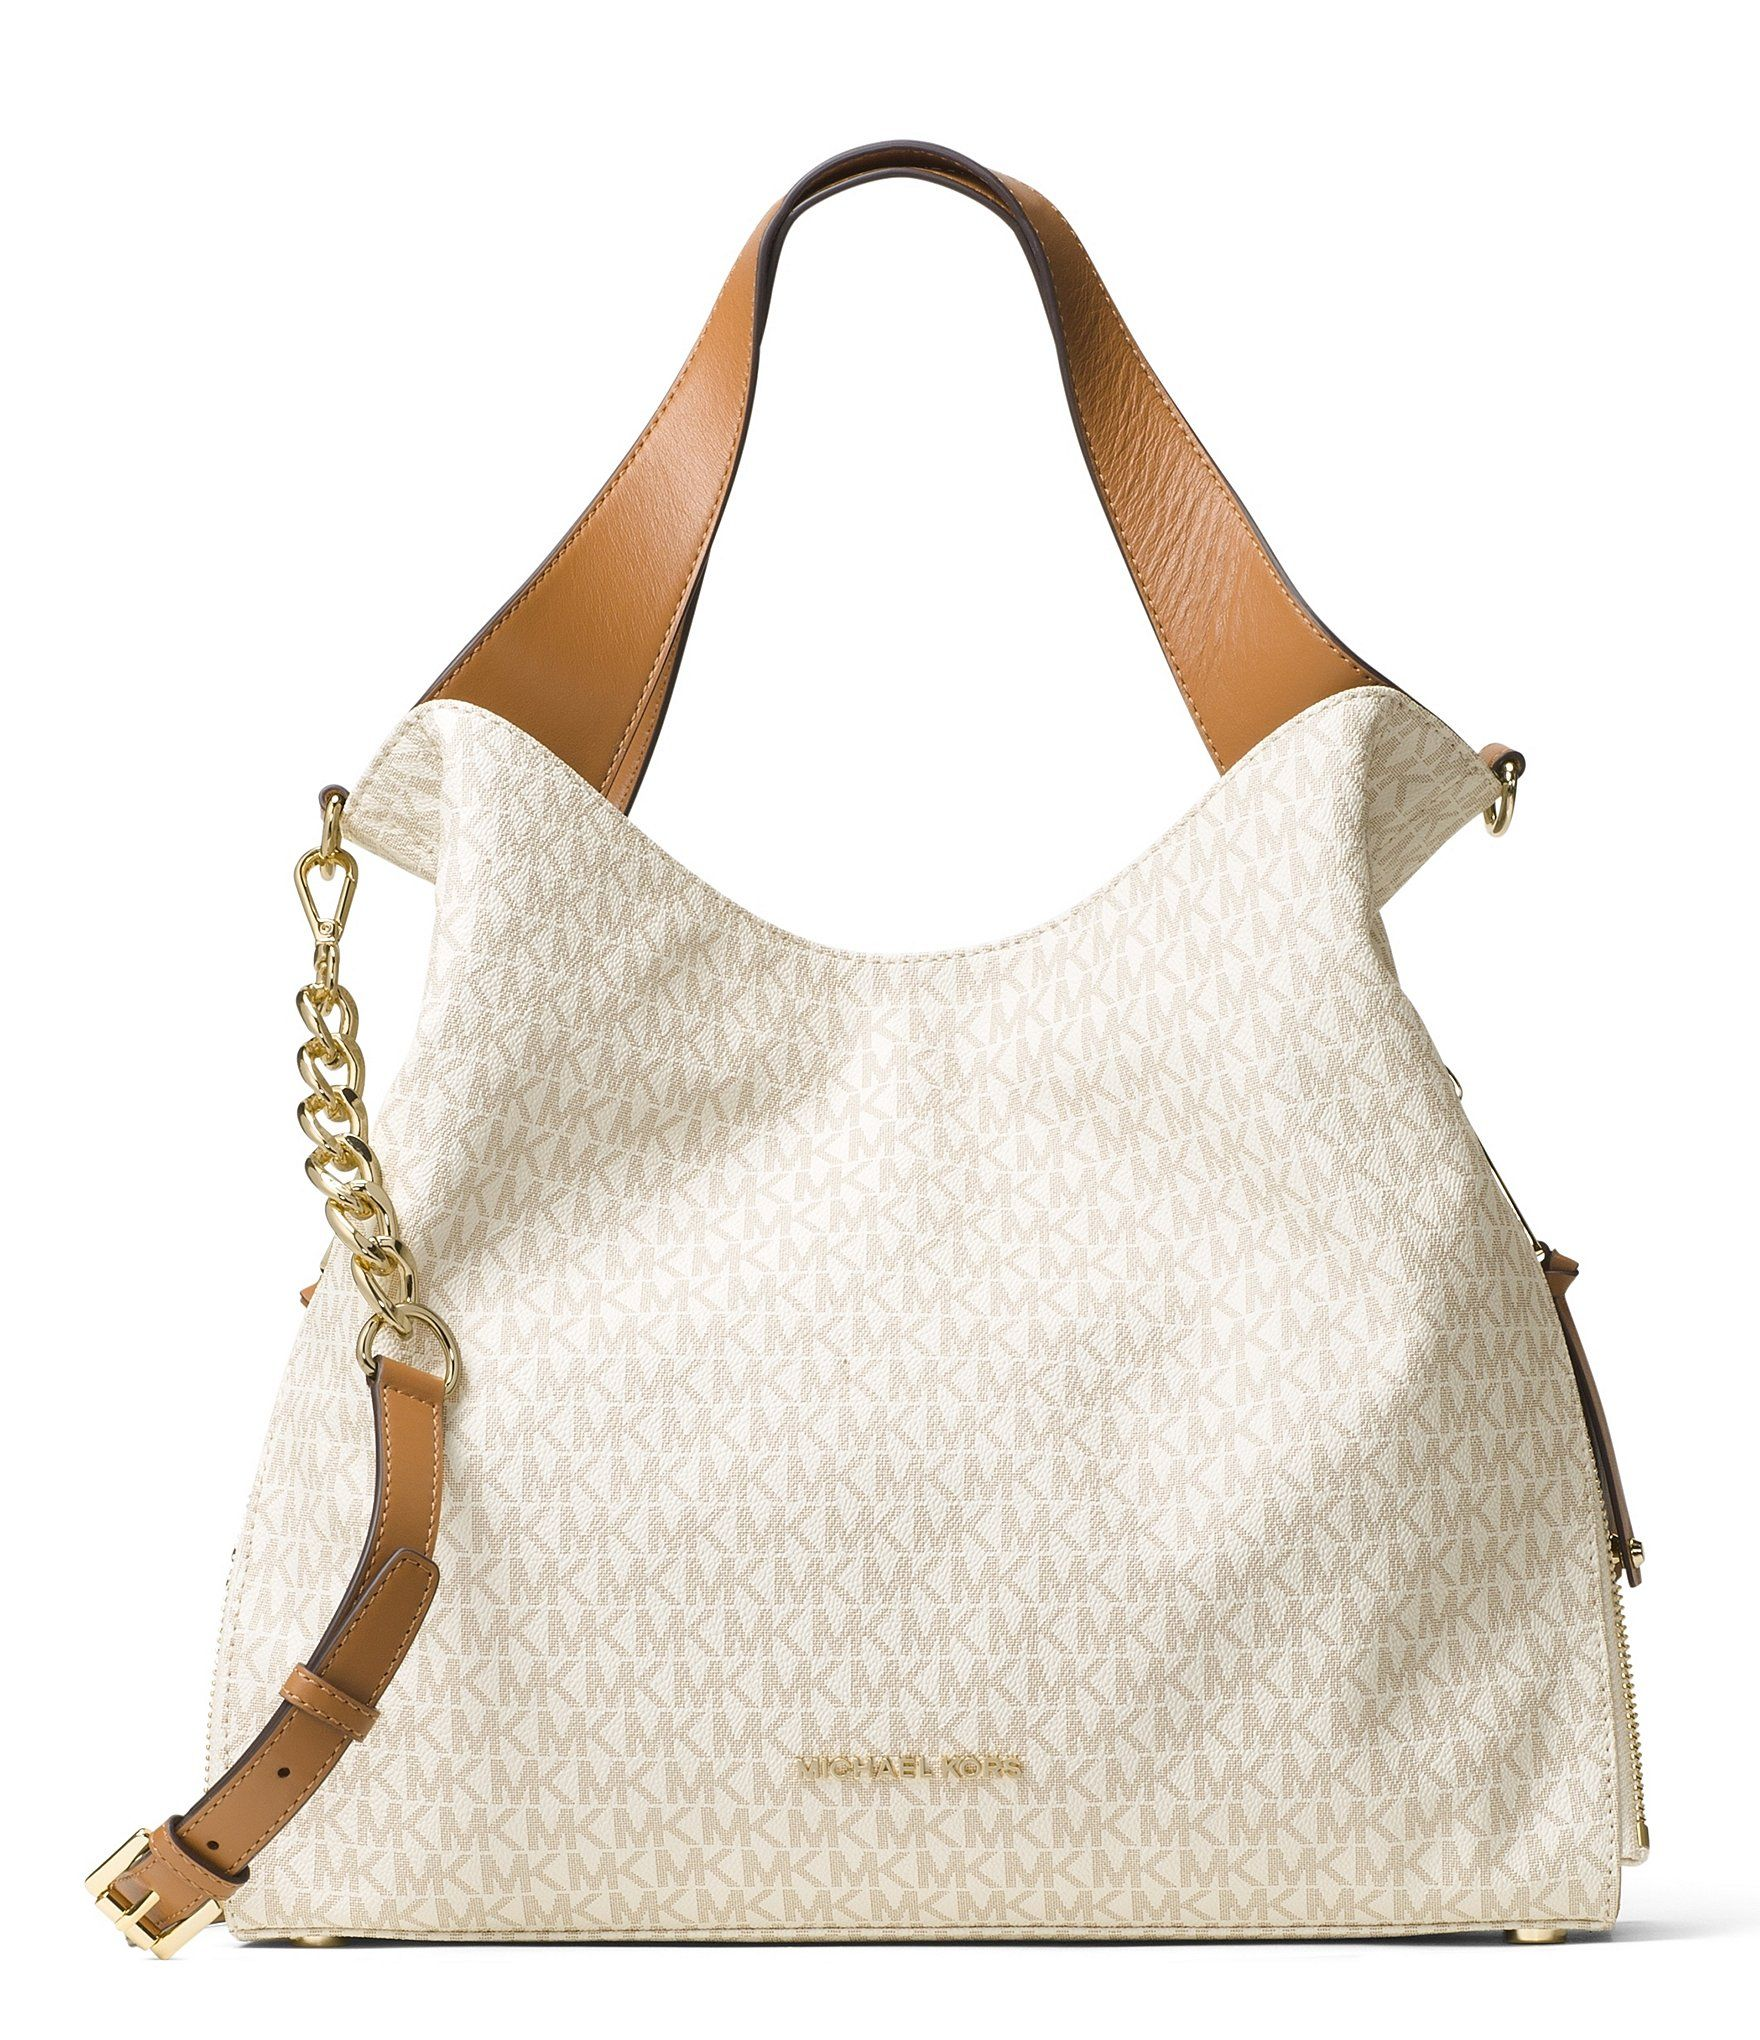 45b02fcc8353 Shop for MICHAEL Michael Kors Devon Signature Large Tote at Dillards.com.  Visit Dillards.com to find clothing, accessories, shoes, cosmetics & more.